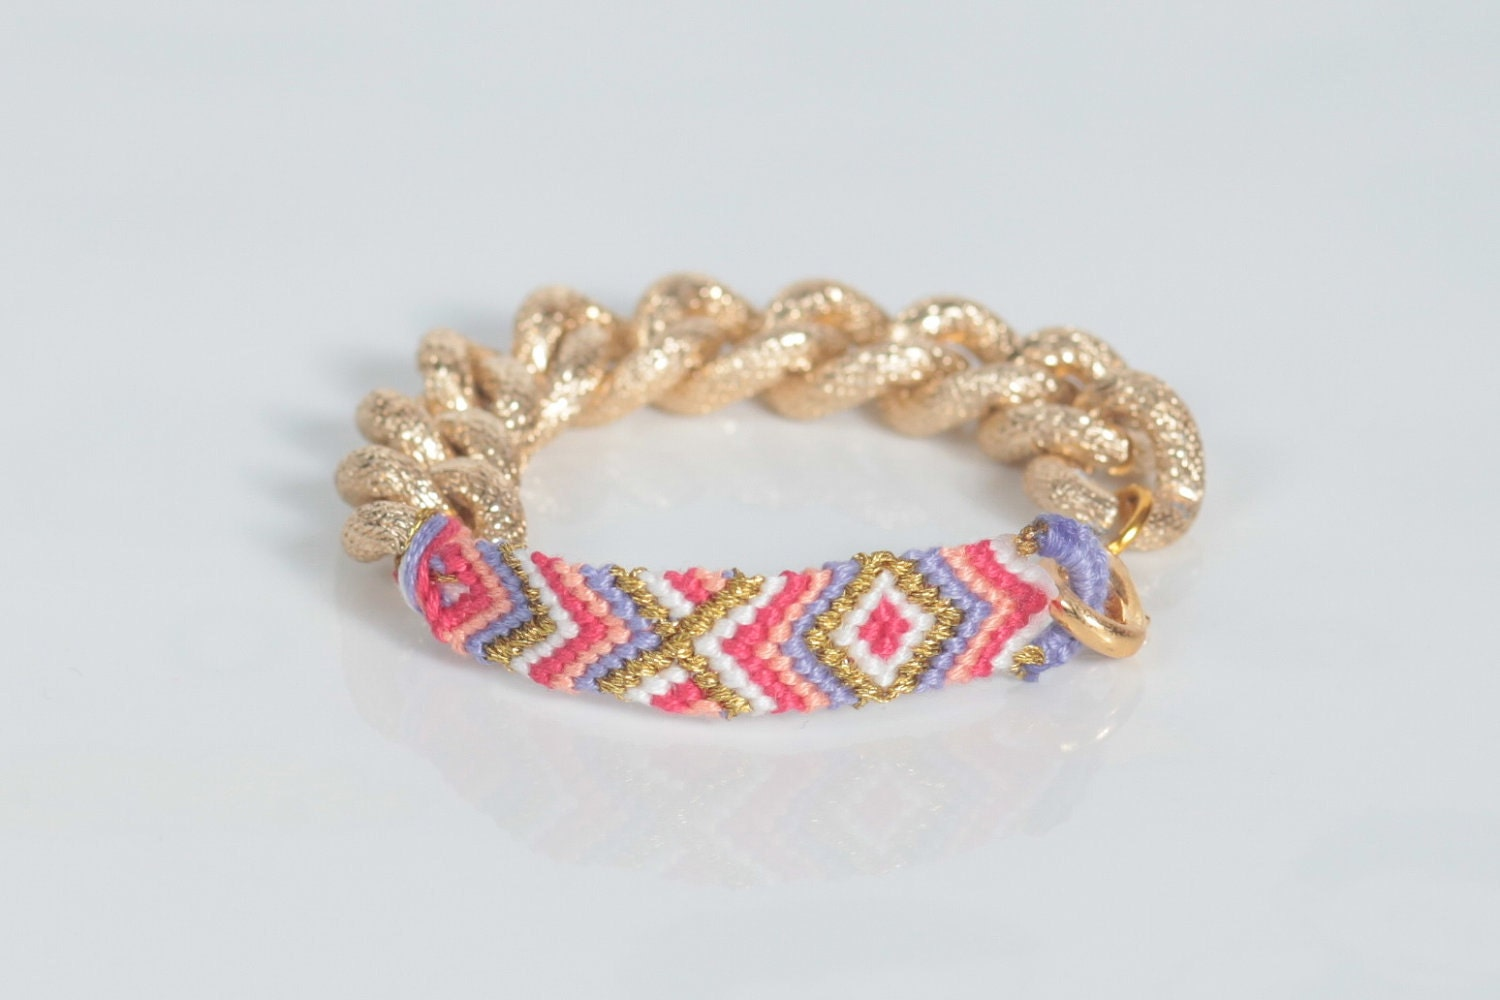 Summer Love Friendship Bracelet - Gold Chain